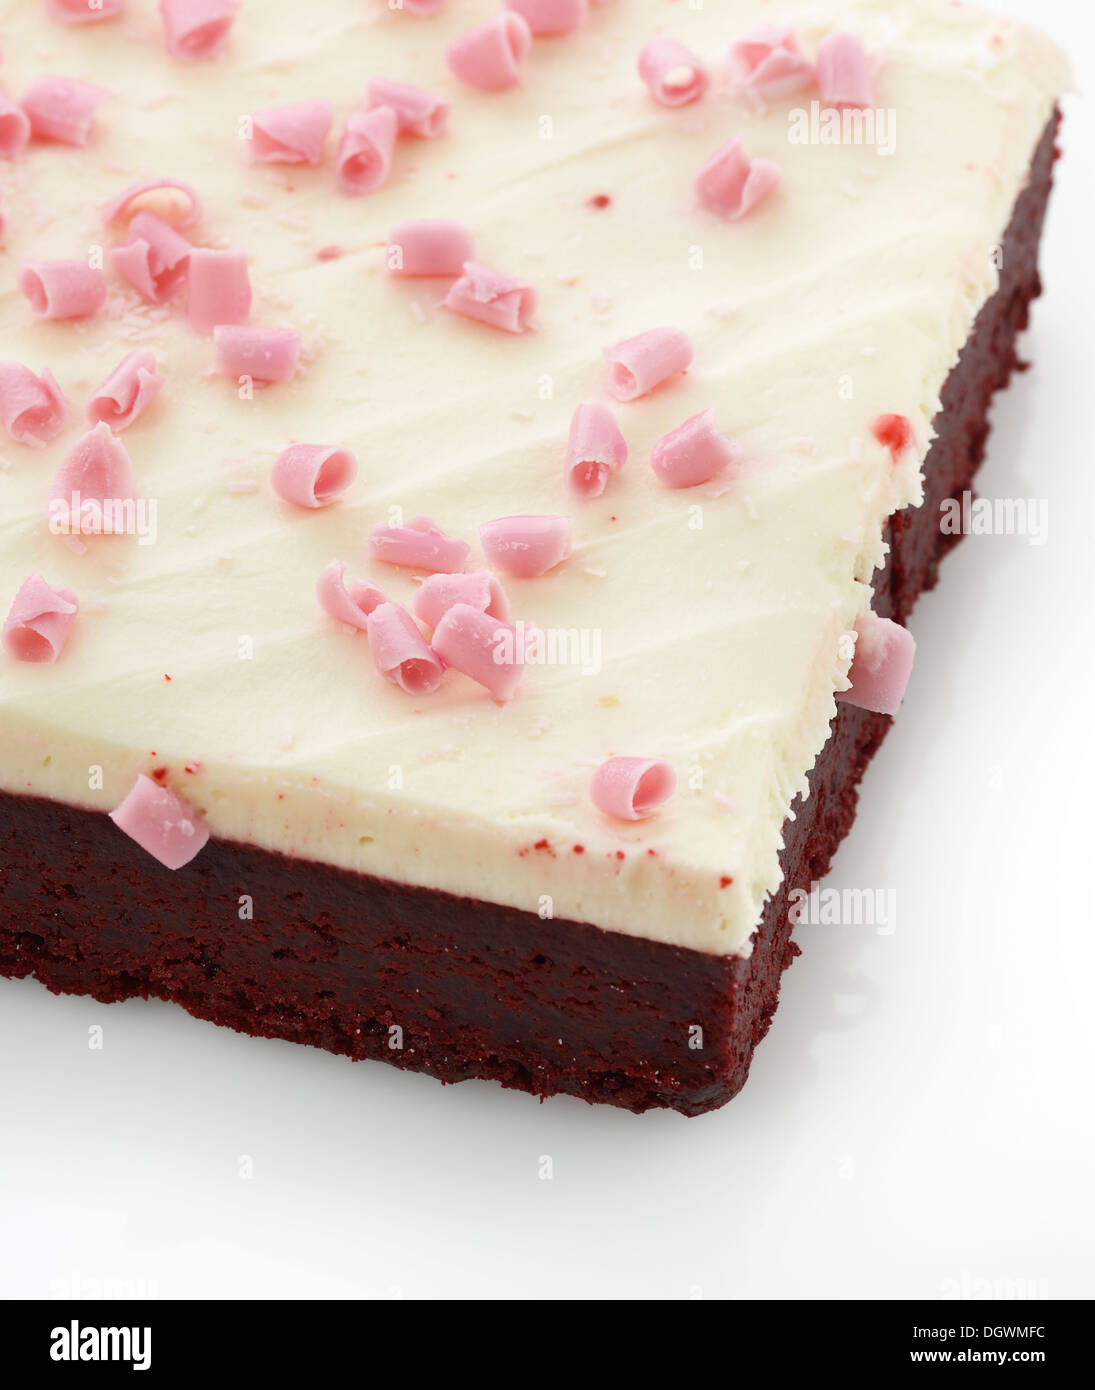 Brownie Bar With Cream Cheese Icing And Pink Chocolate - Stock Image